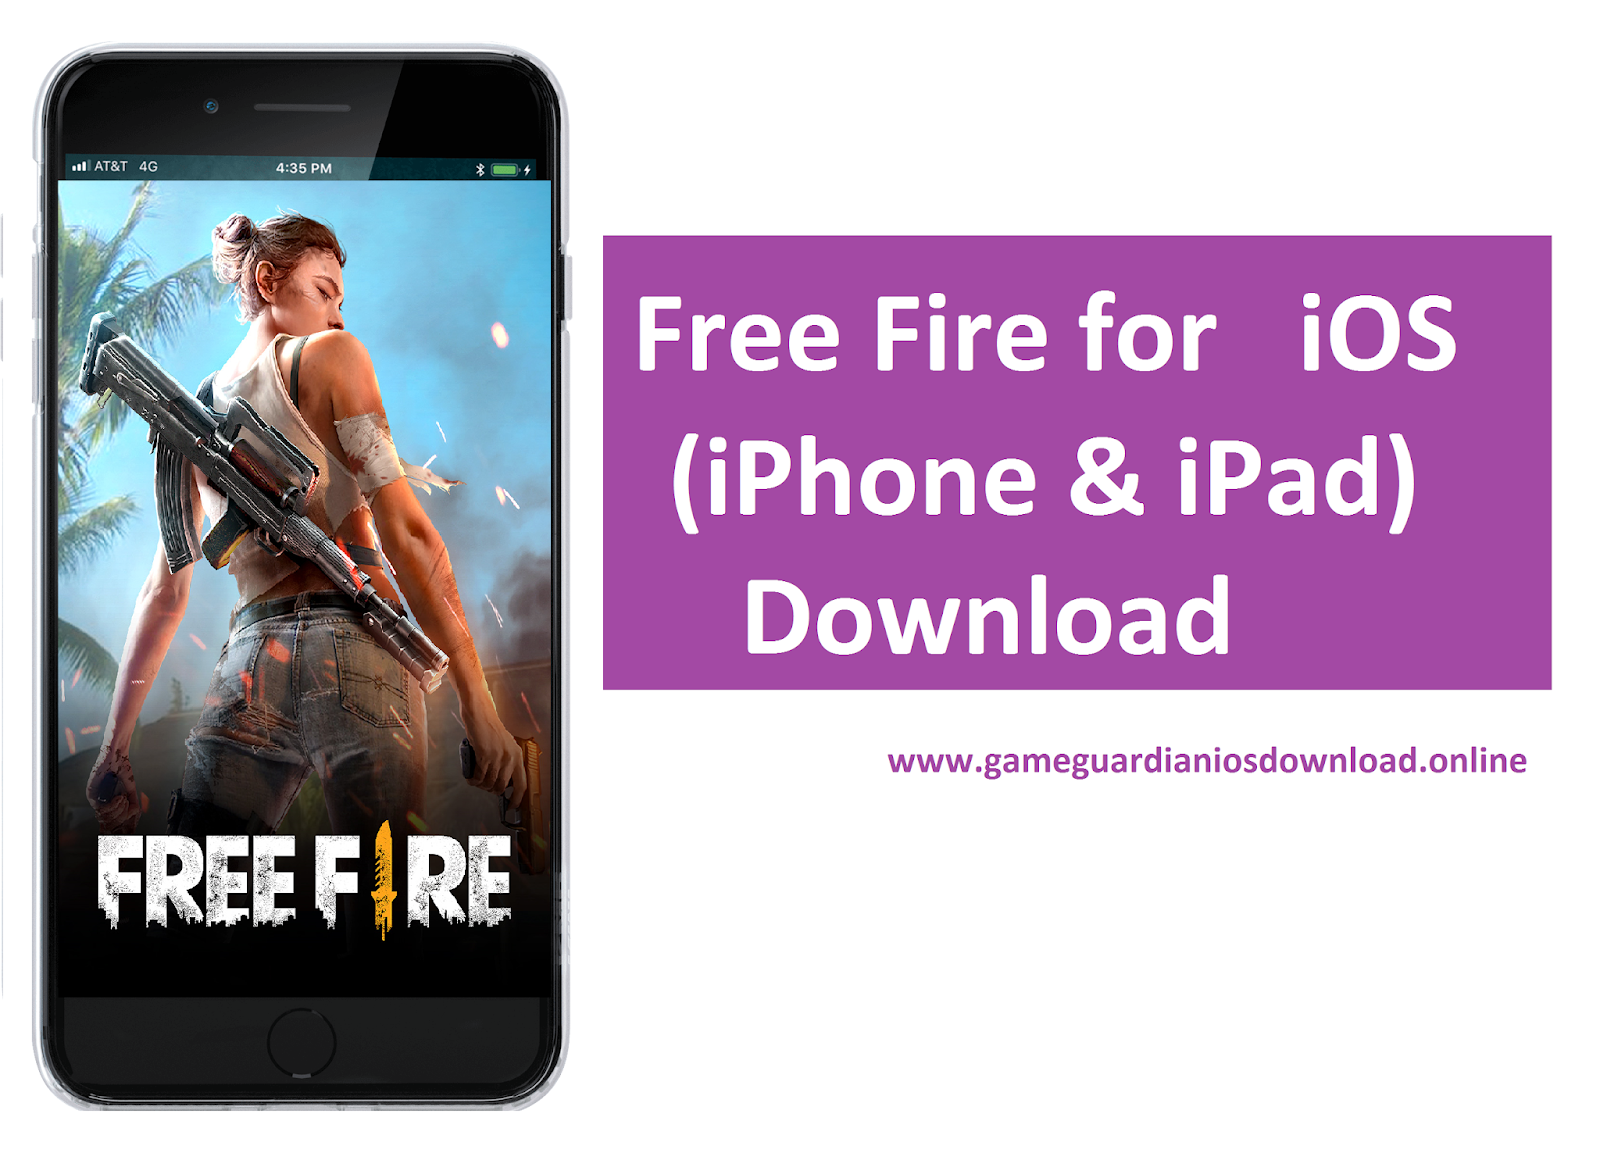 Garena Free Fire for iOS (iPhone & iPad) Download